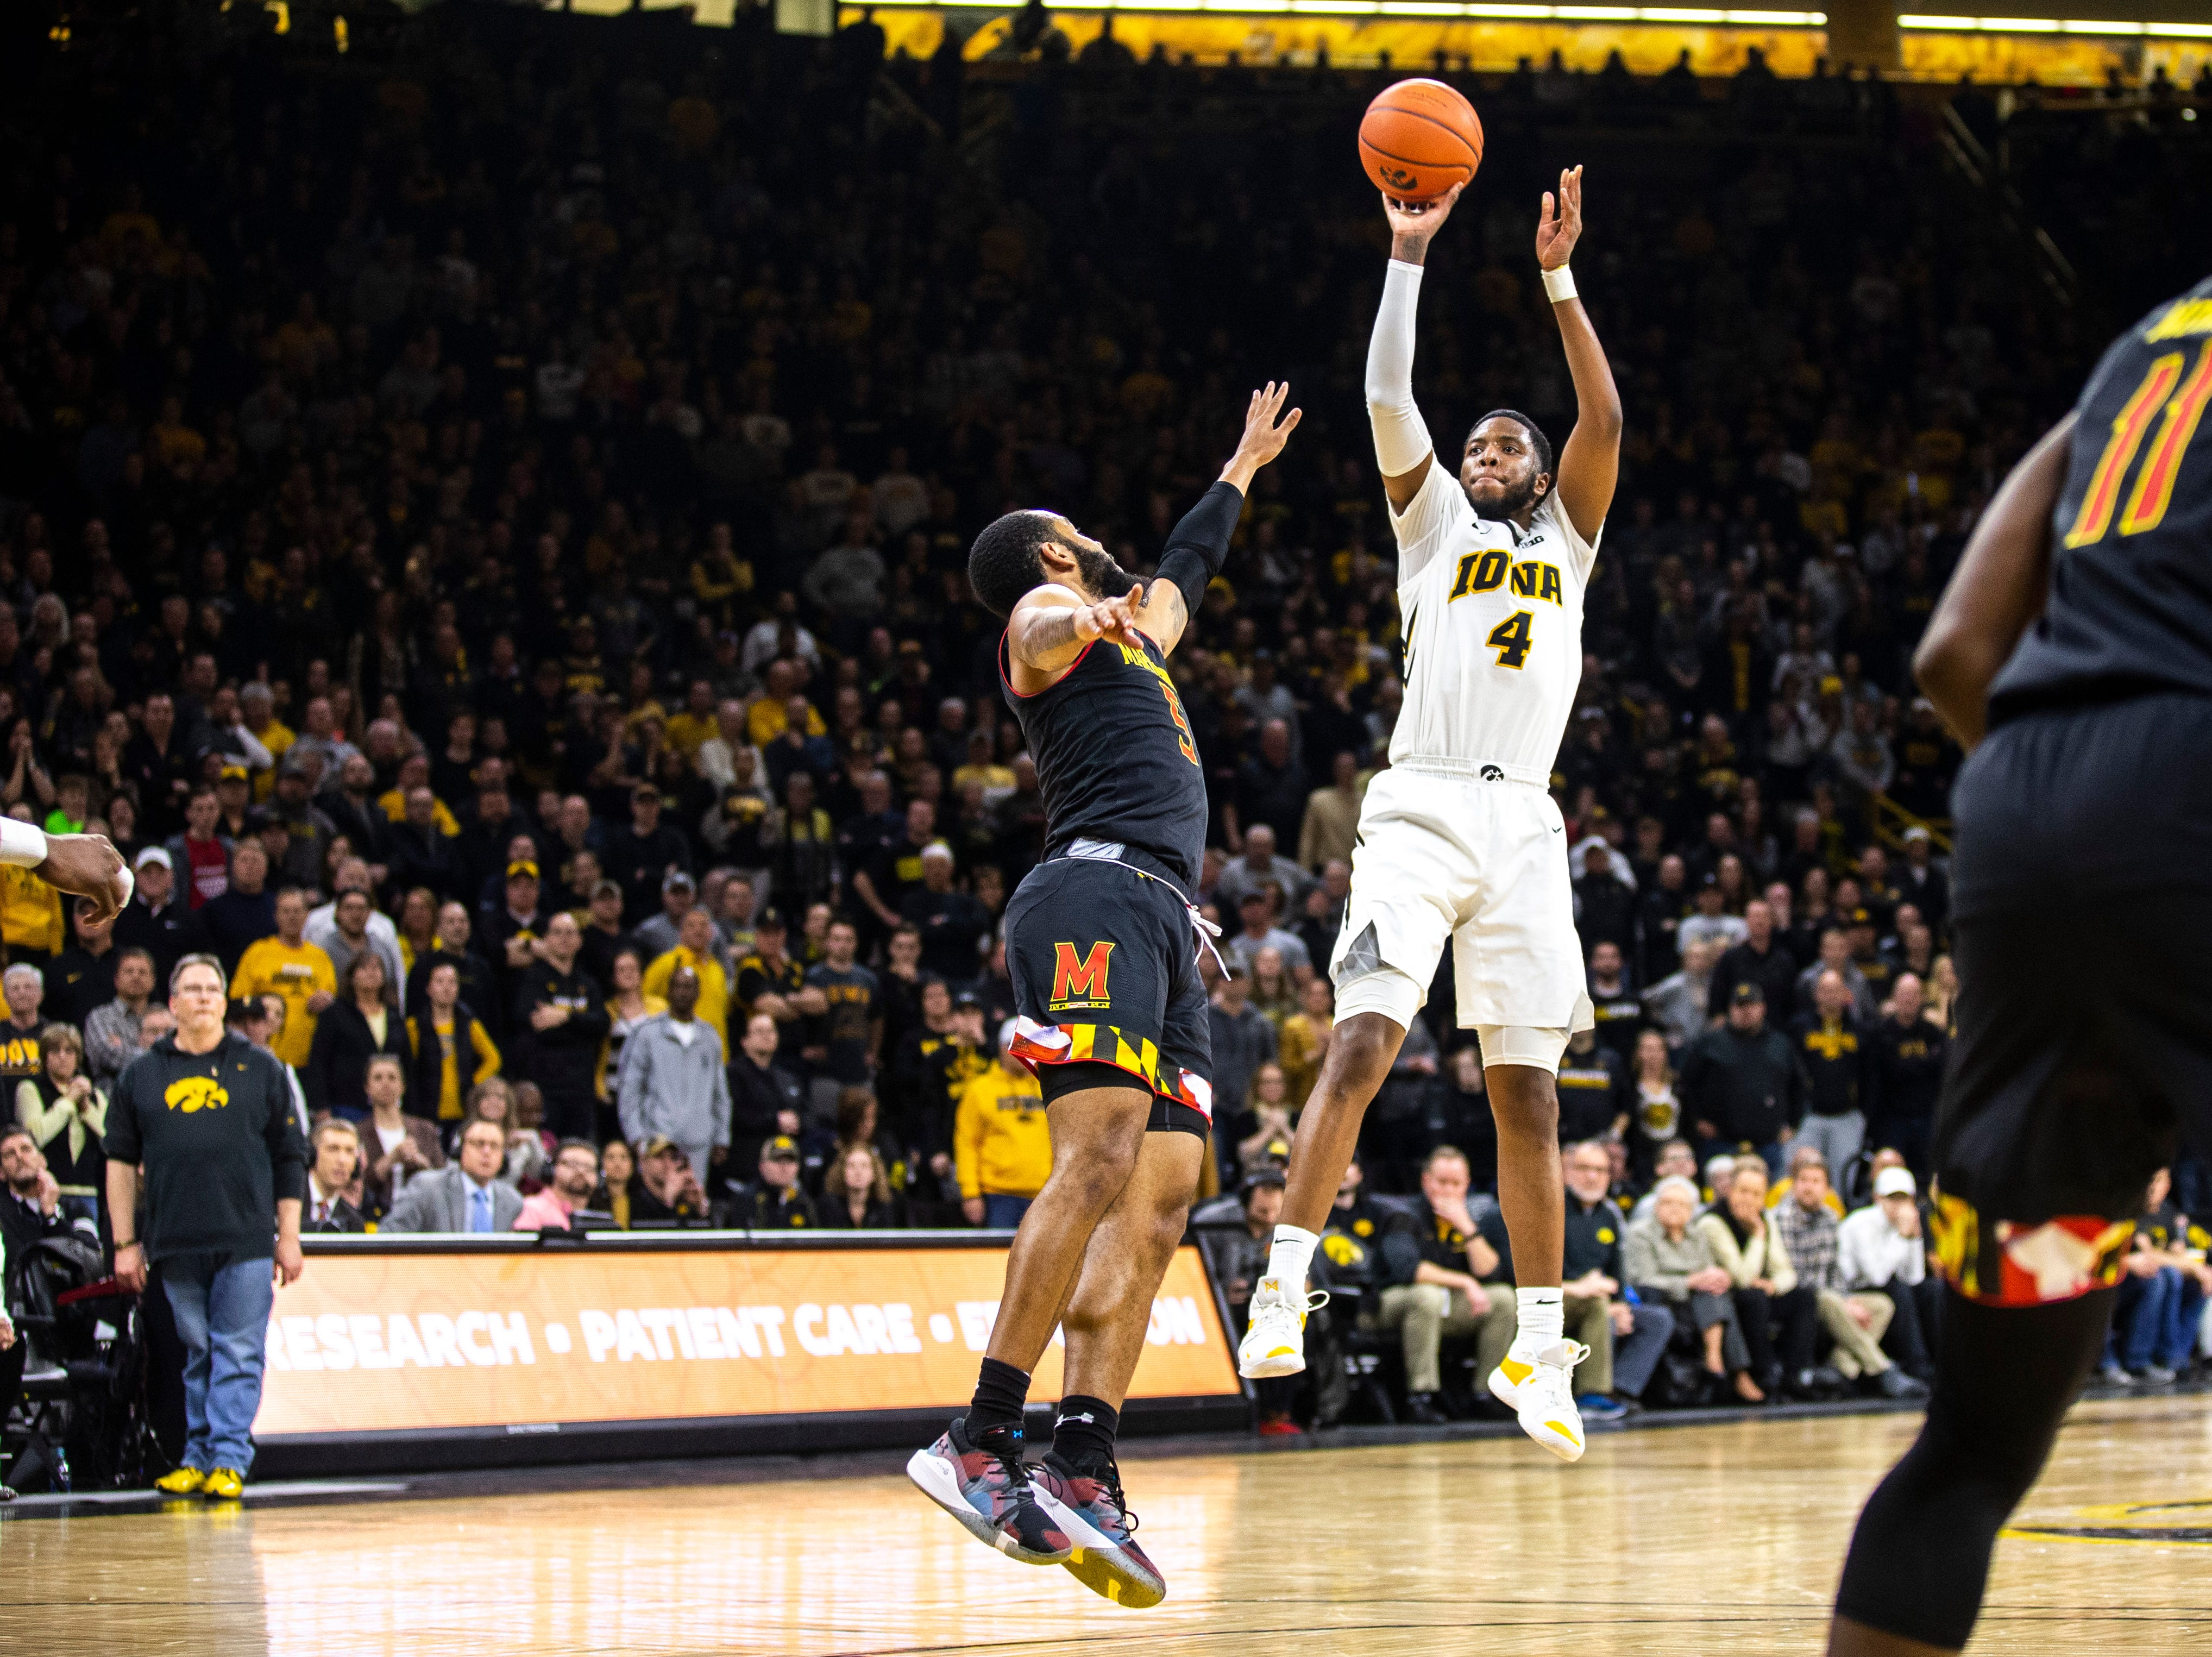 Iowa guard Isaiah Moss (4) attempts a 3-point basket while Maryland guard Eric Ayala (5) defends during a NCAA Big Ten Conference men's basketball game on Tuesday, Feb. 19, 2019 at Carver-Hawkeye Arena in Iowa City, Iowa.